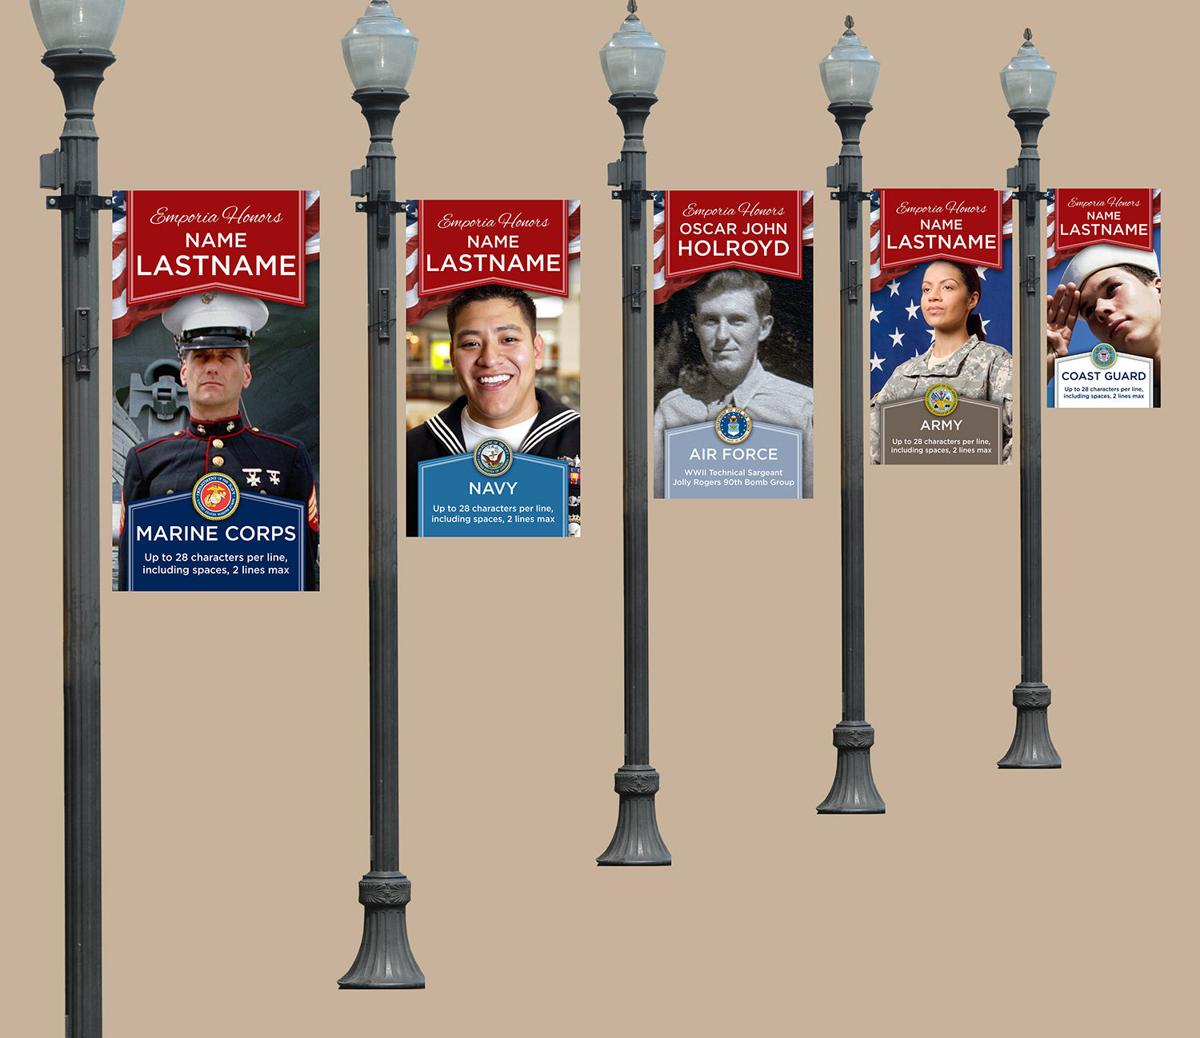 55 Veteran Banners up for grabs | News